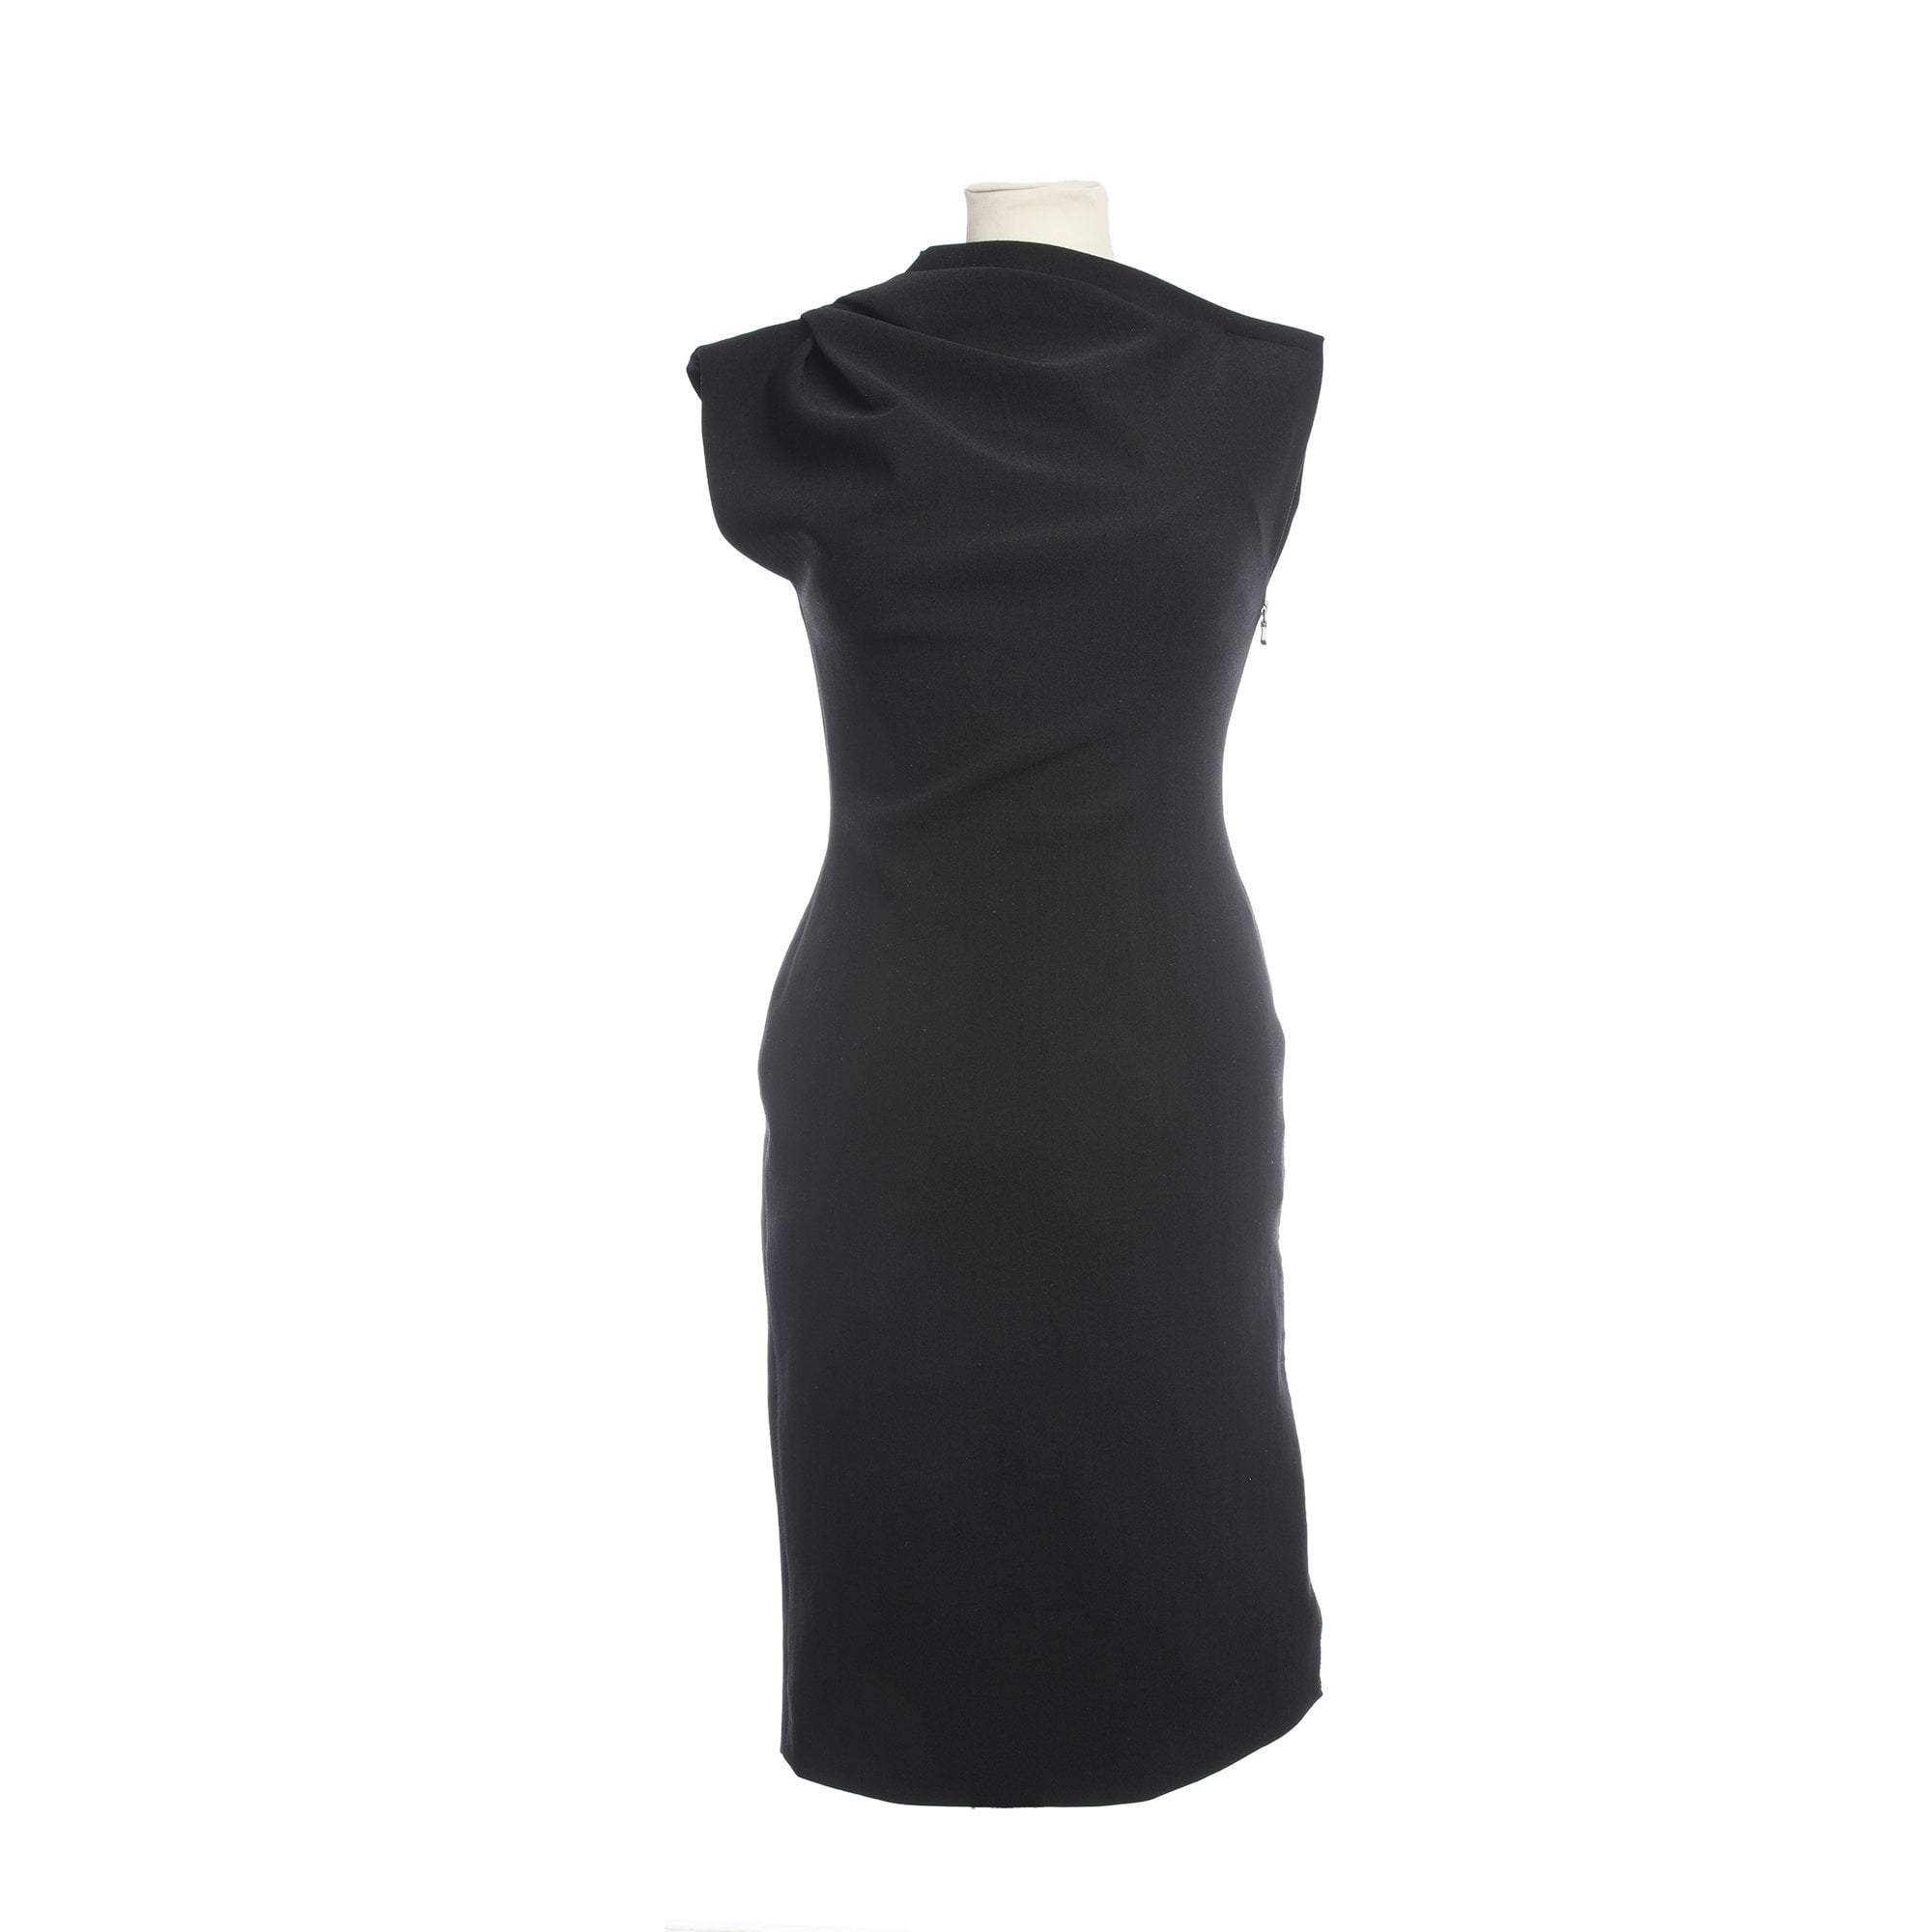 Lanvin Black Dress Sleeveless Zipper At The Side